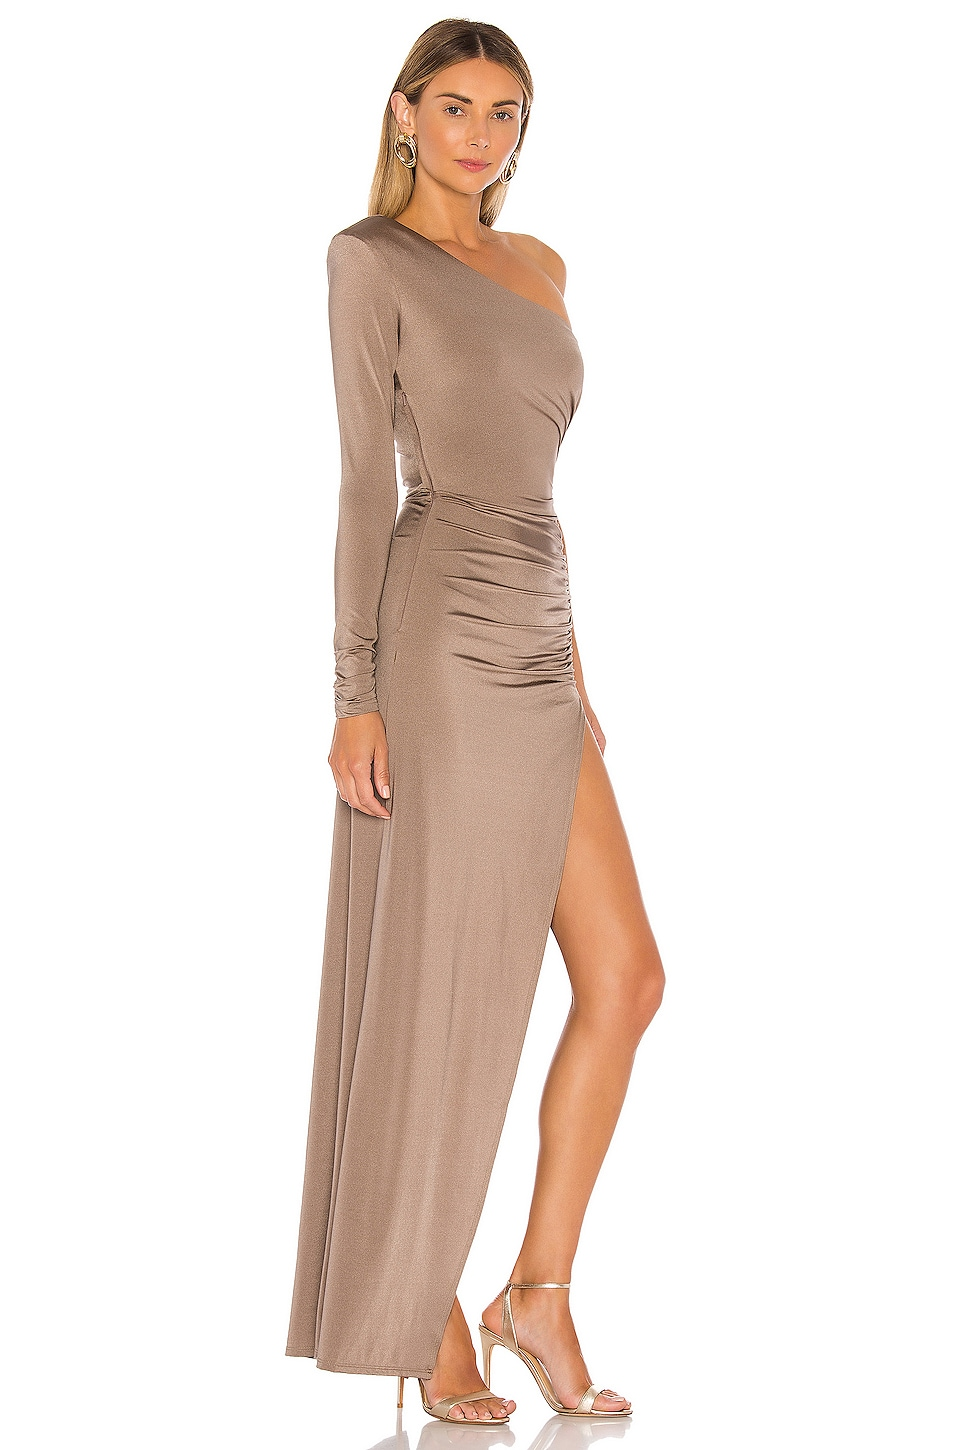 x REVOLVE Gilly Maxi Dress, view 2, click to view large image.